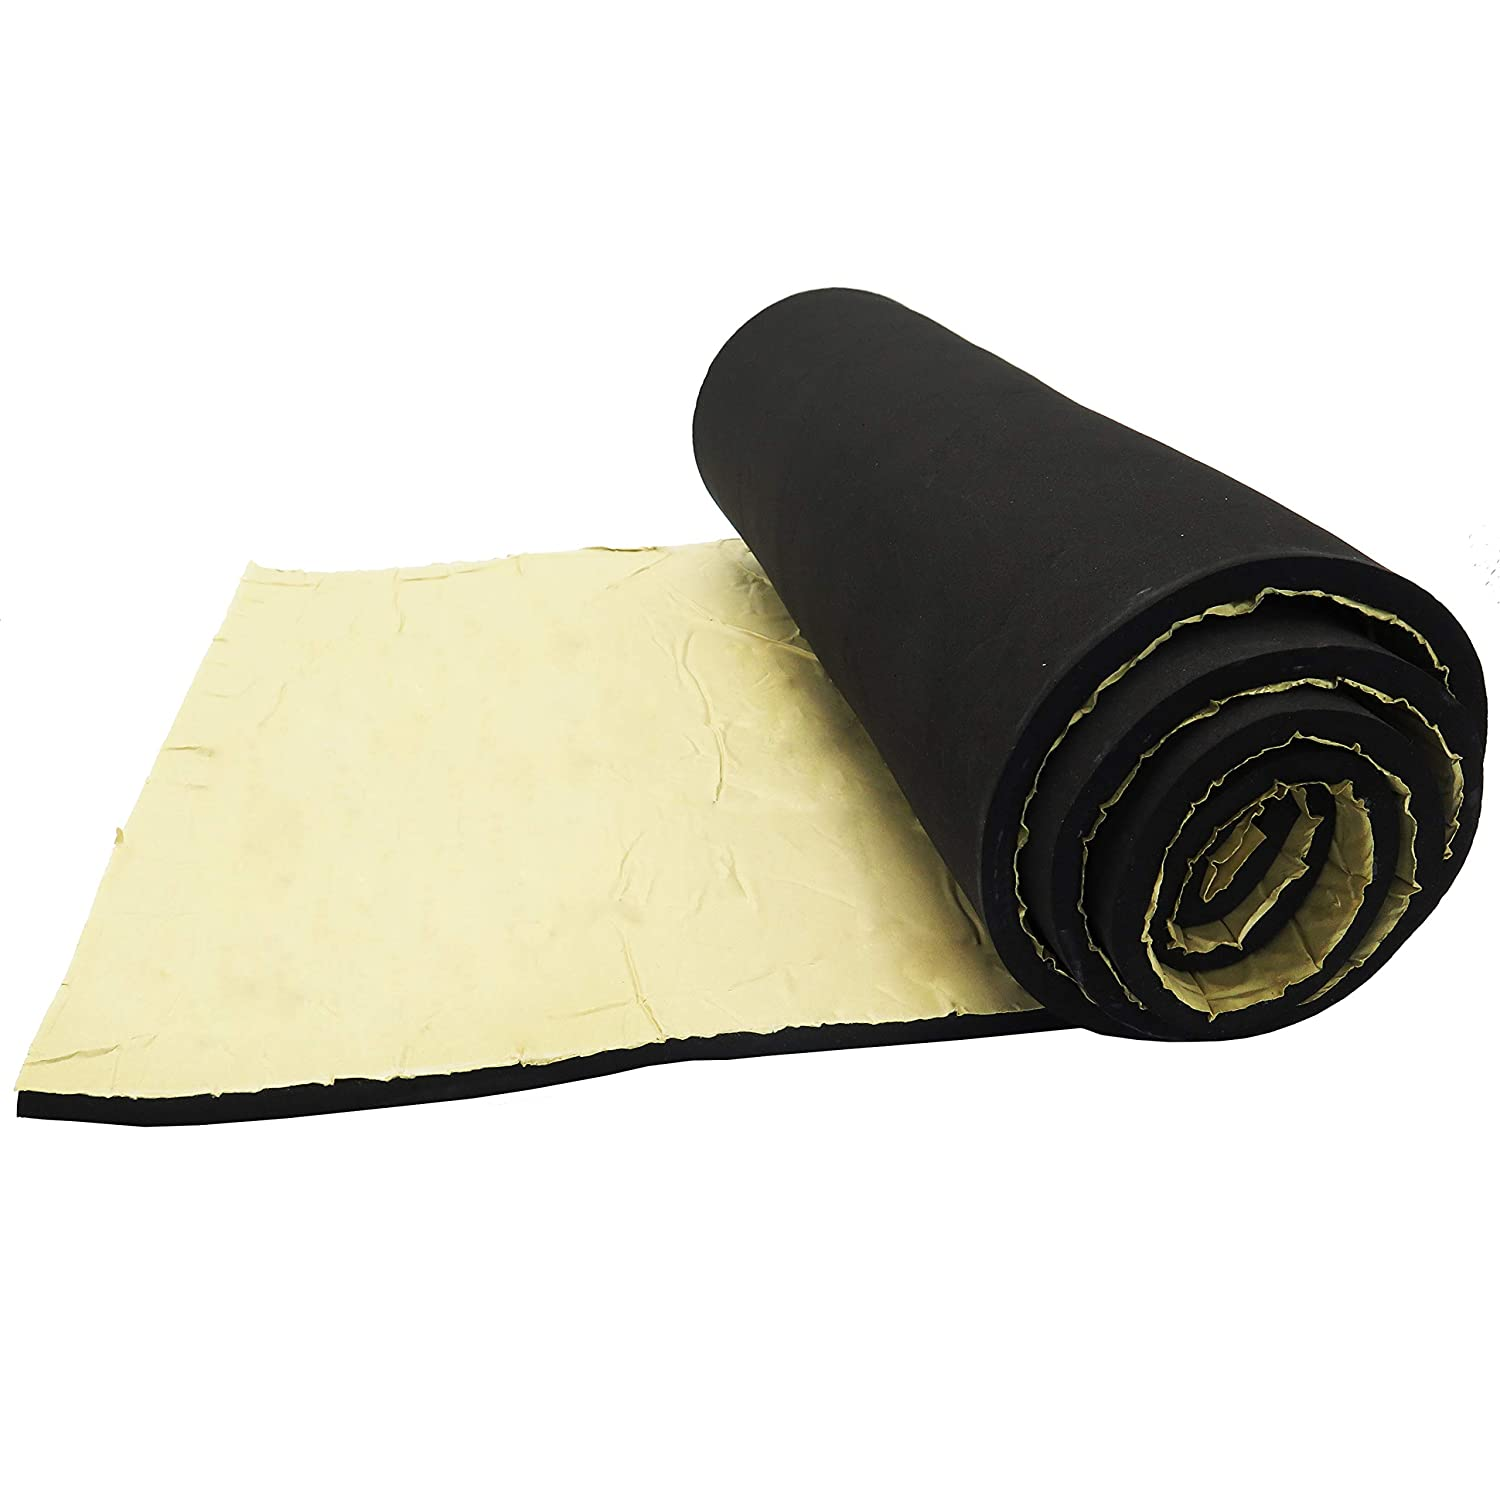 Neoprene Sponge Foam Rubber Roll with Adhesive 15in x 60in x 3 8in Thick for DIY Projects